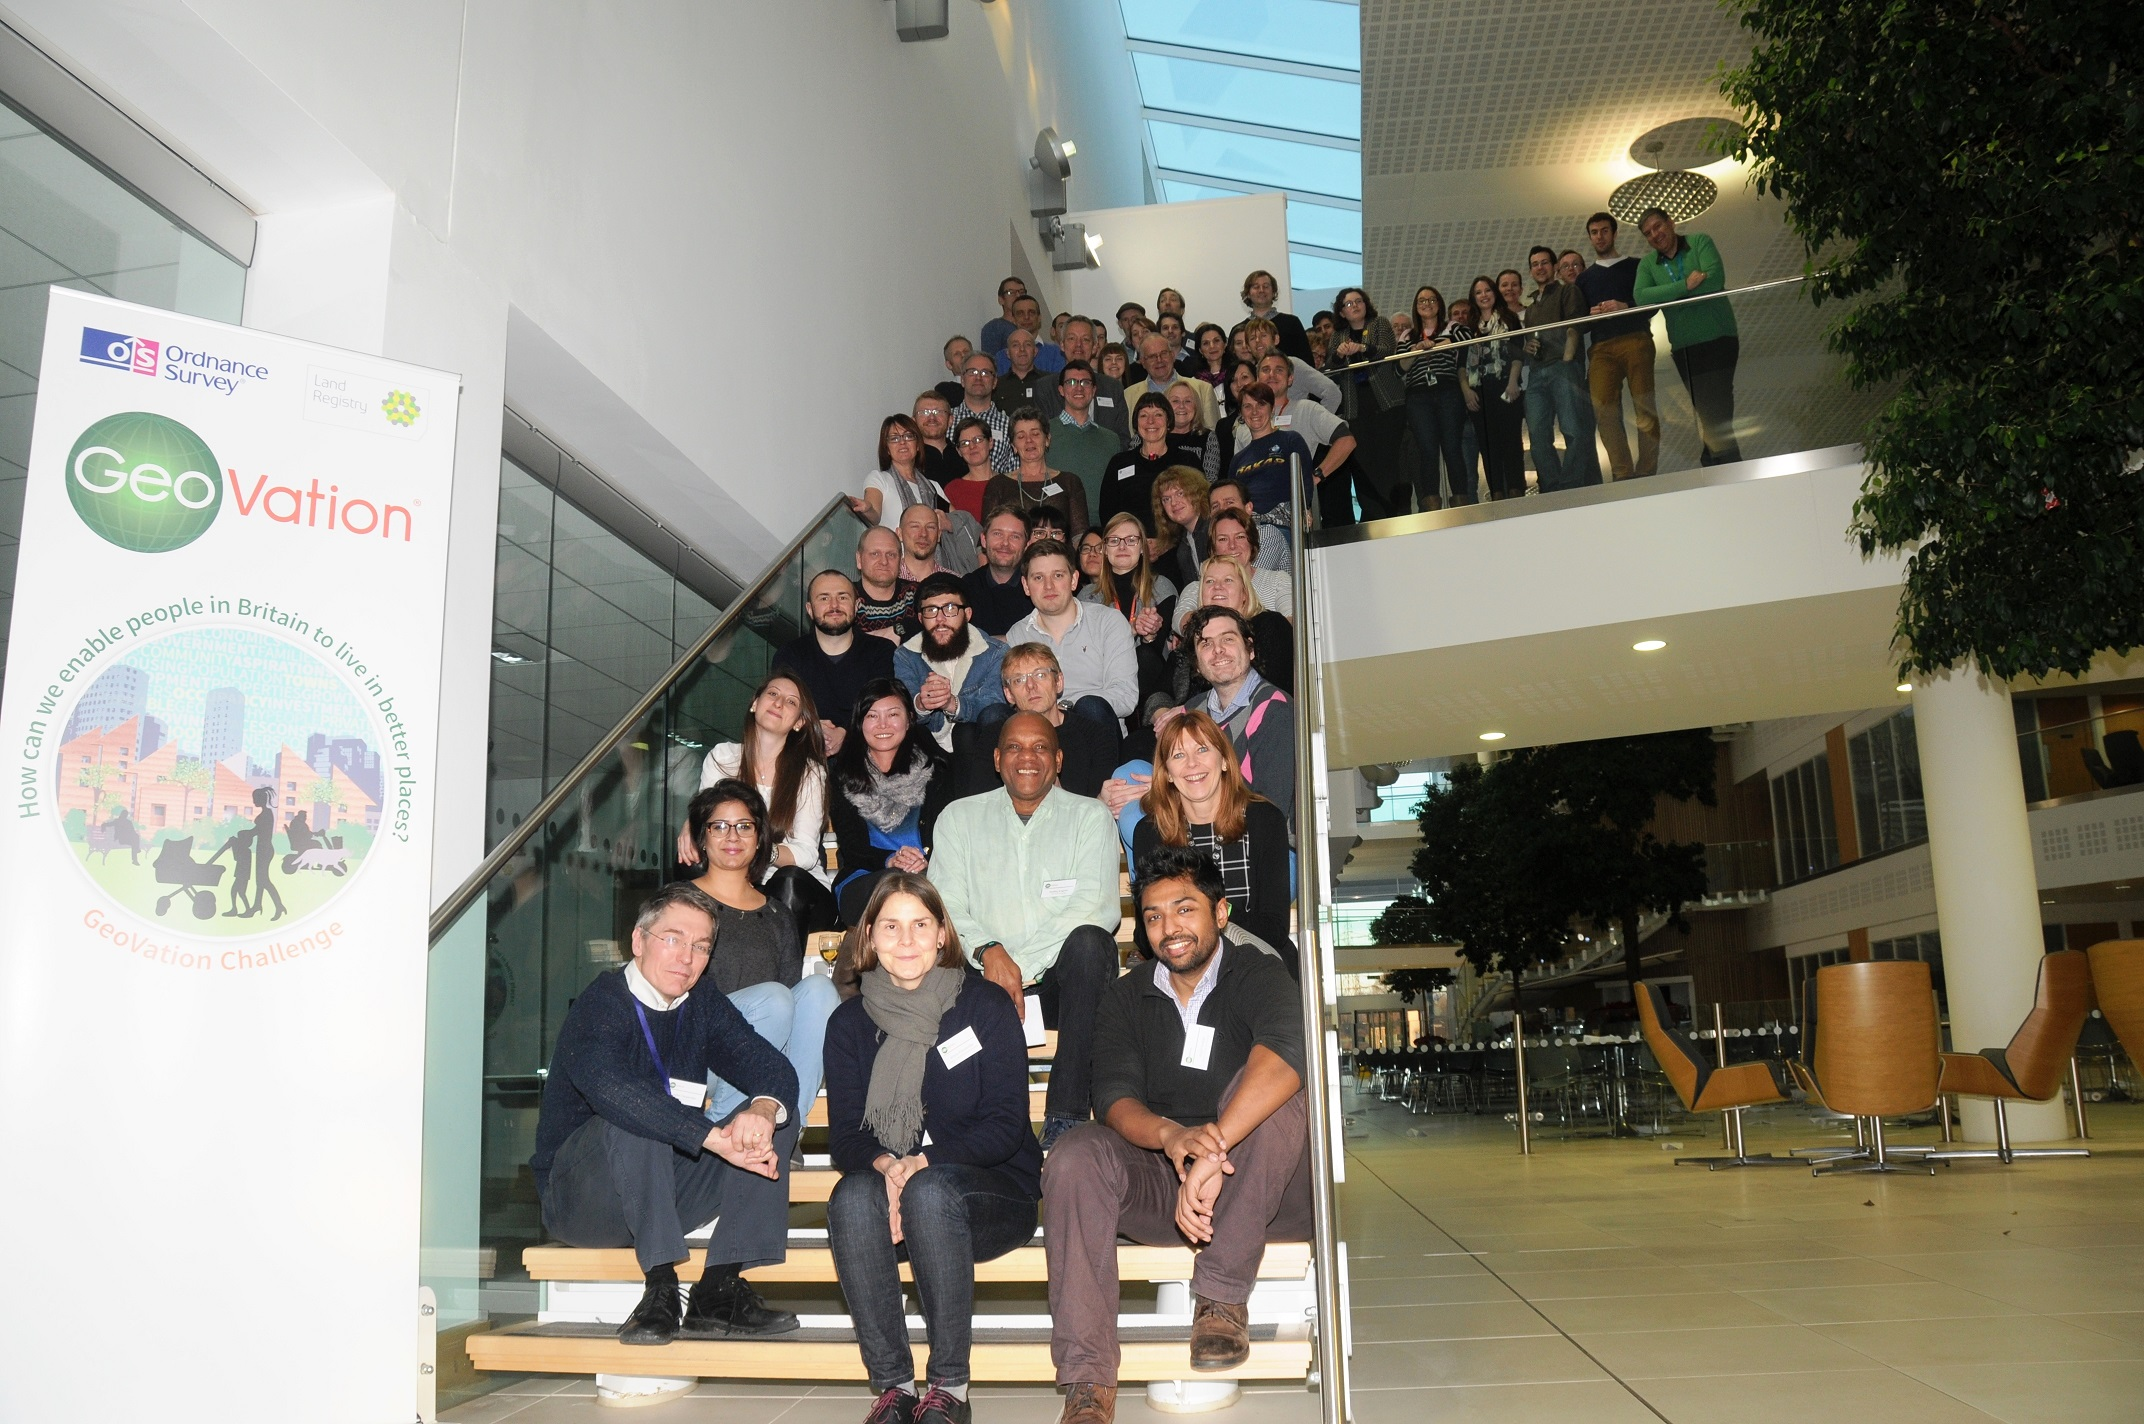 GeoVation camp 2015